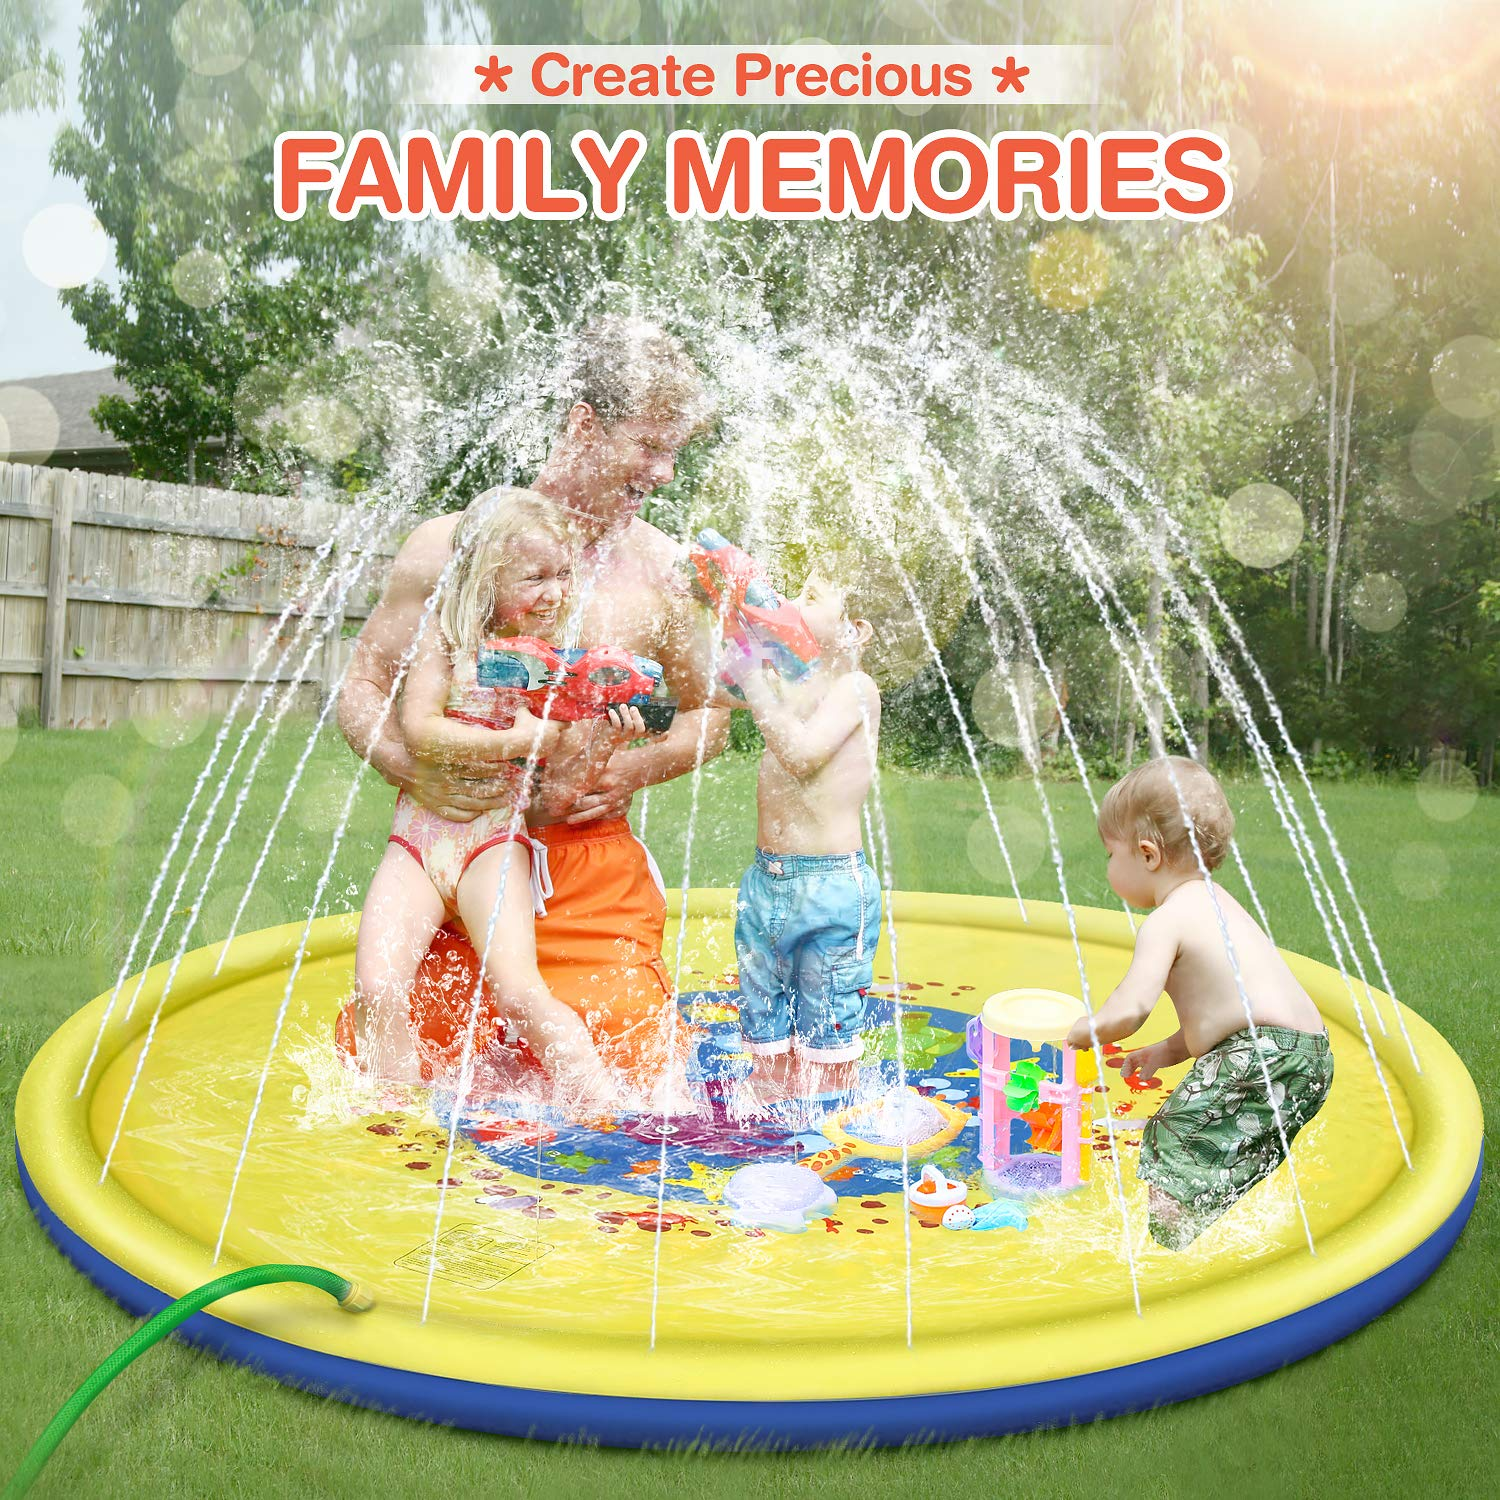 Splash Pad, 69 Inches No More Burst Sprinkle and Splash Play Mat Sprinkler for Kids Boys Girls Fun Splash Play Mat Summer Outdoor Sprinkler Pad Party Water Toys Extra Large Children's Sprinkler Pool by tomser (Image #5)